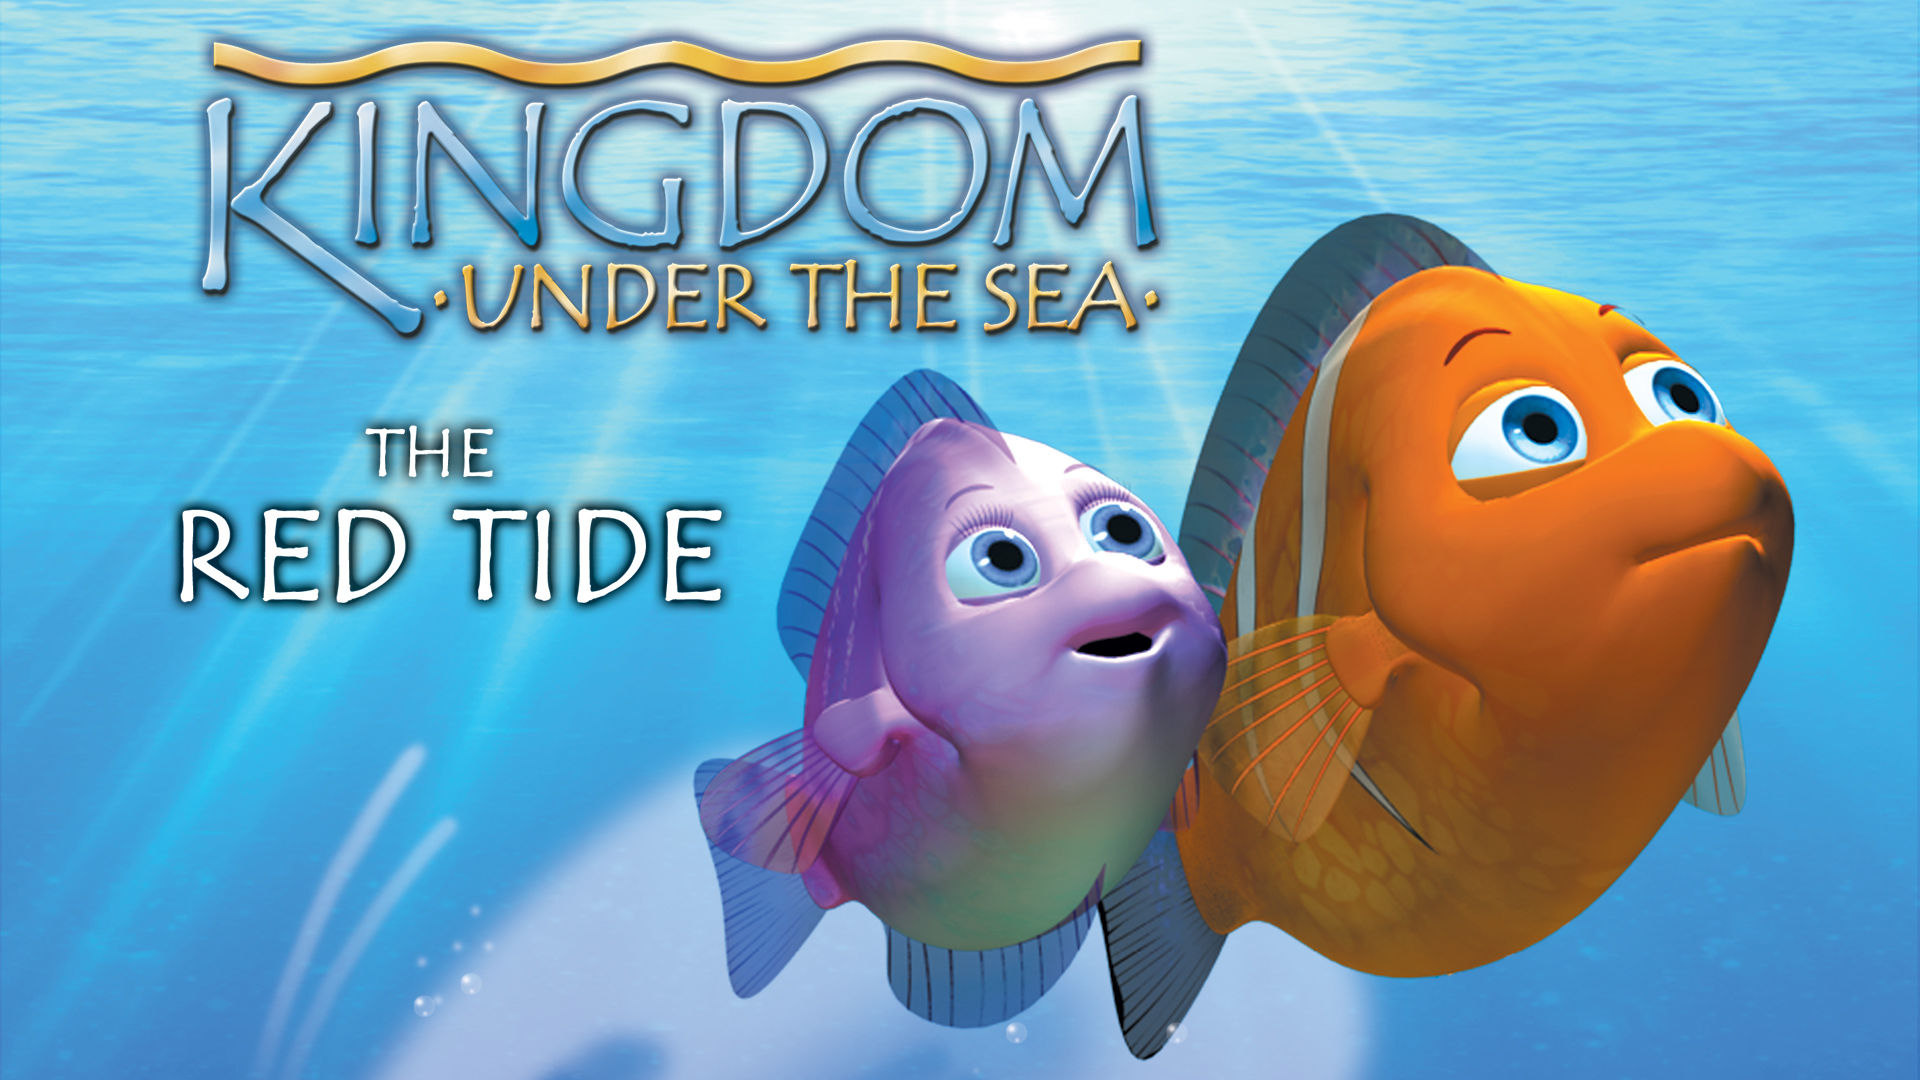 Kingdom under the Sea-The Red Tide